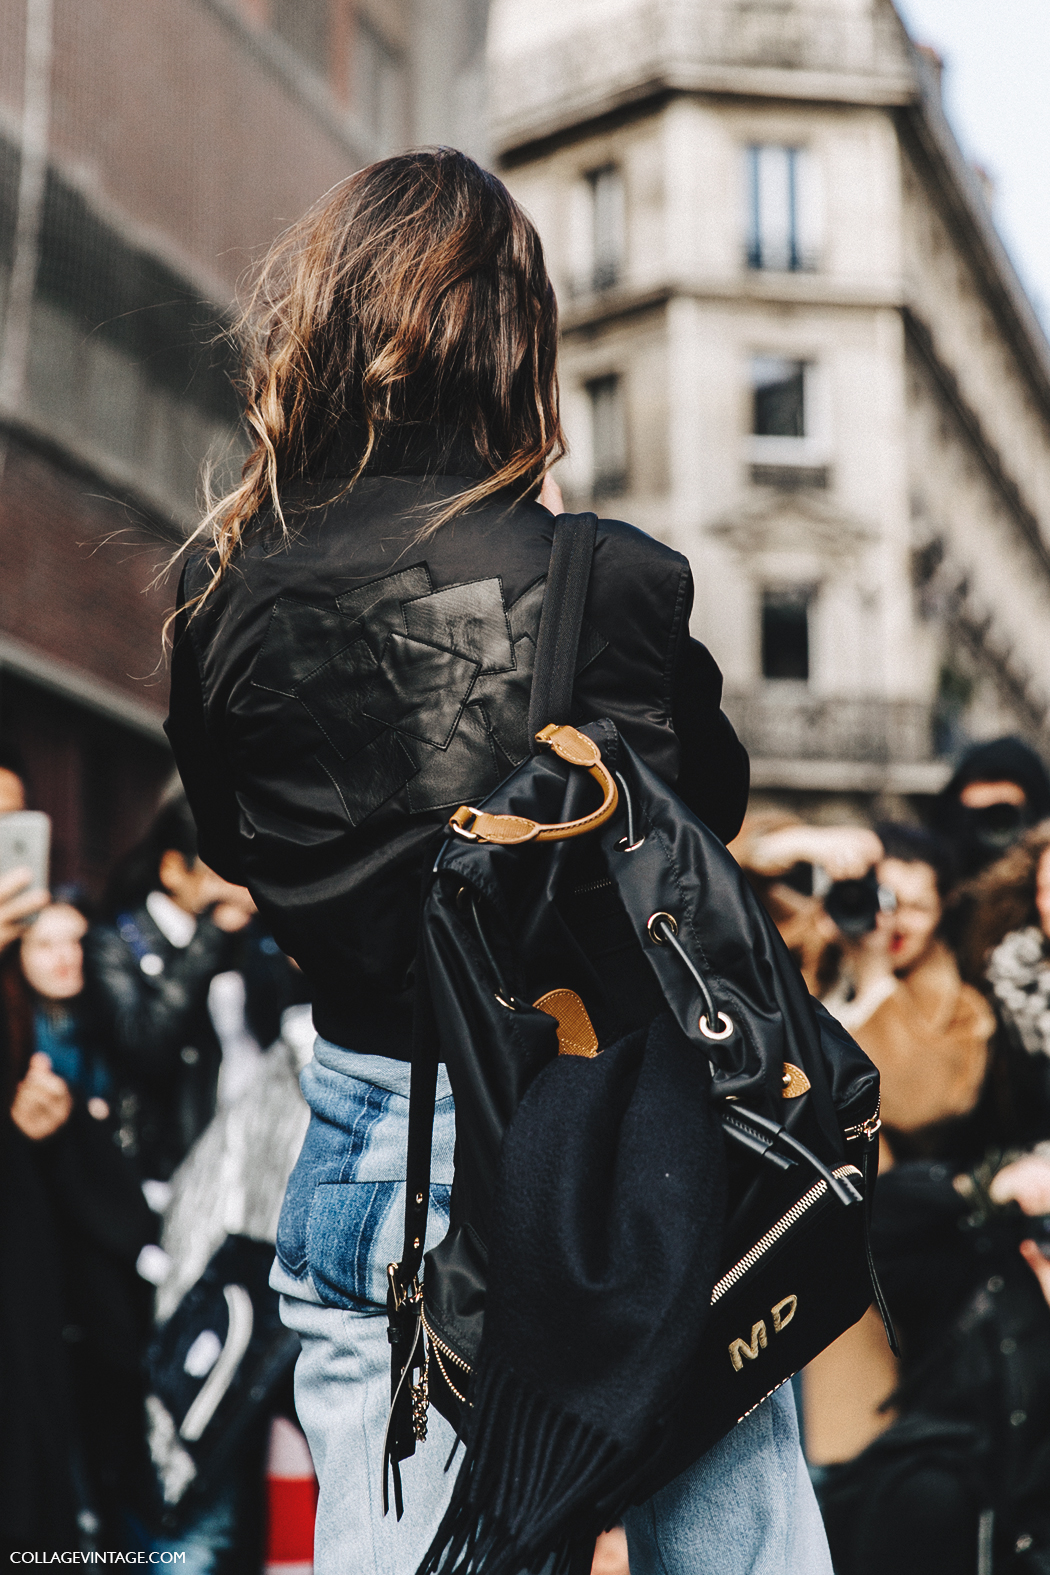 PFW-Paris_Fashion_Week_Fall_2016-Street_Style-Collage_Vintage-Miroslava_Duma-Vetements-Jeans-Backpack-Bomber-4